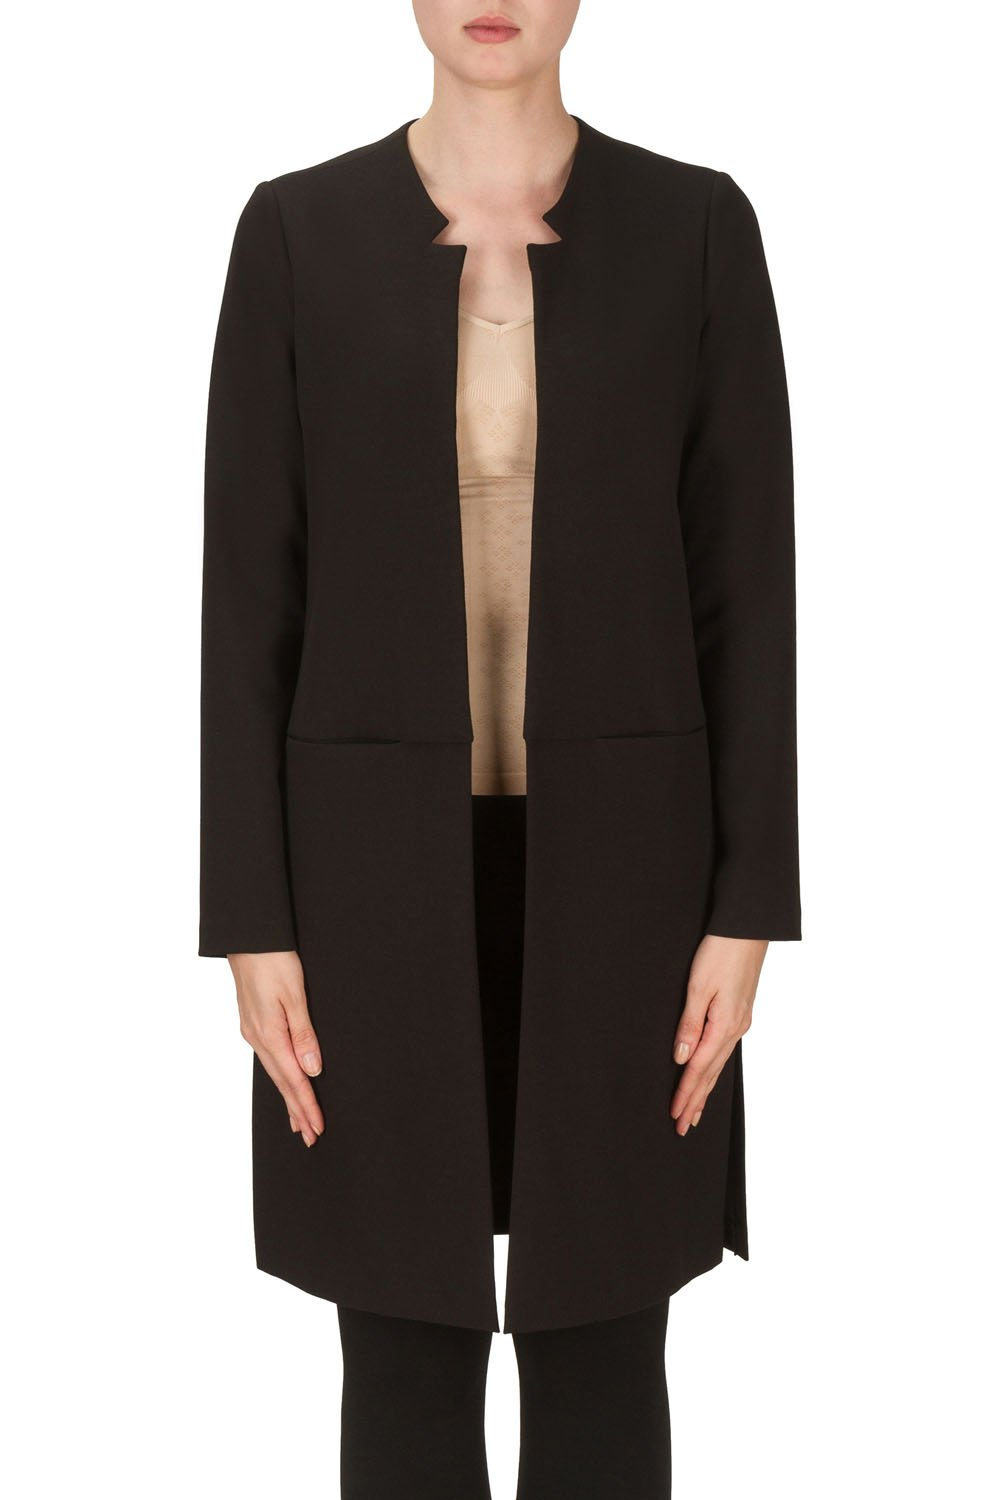 Joseph Ribkoff Black Knee Length Open Coverup Jacket Style 171411 (8)